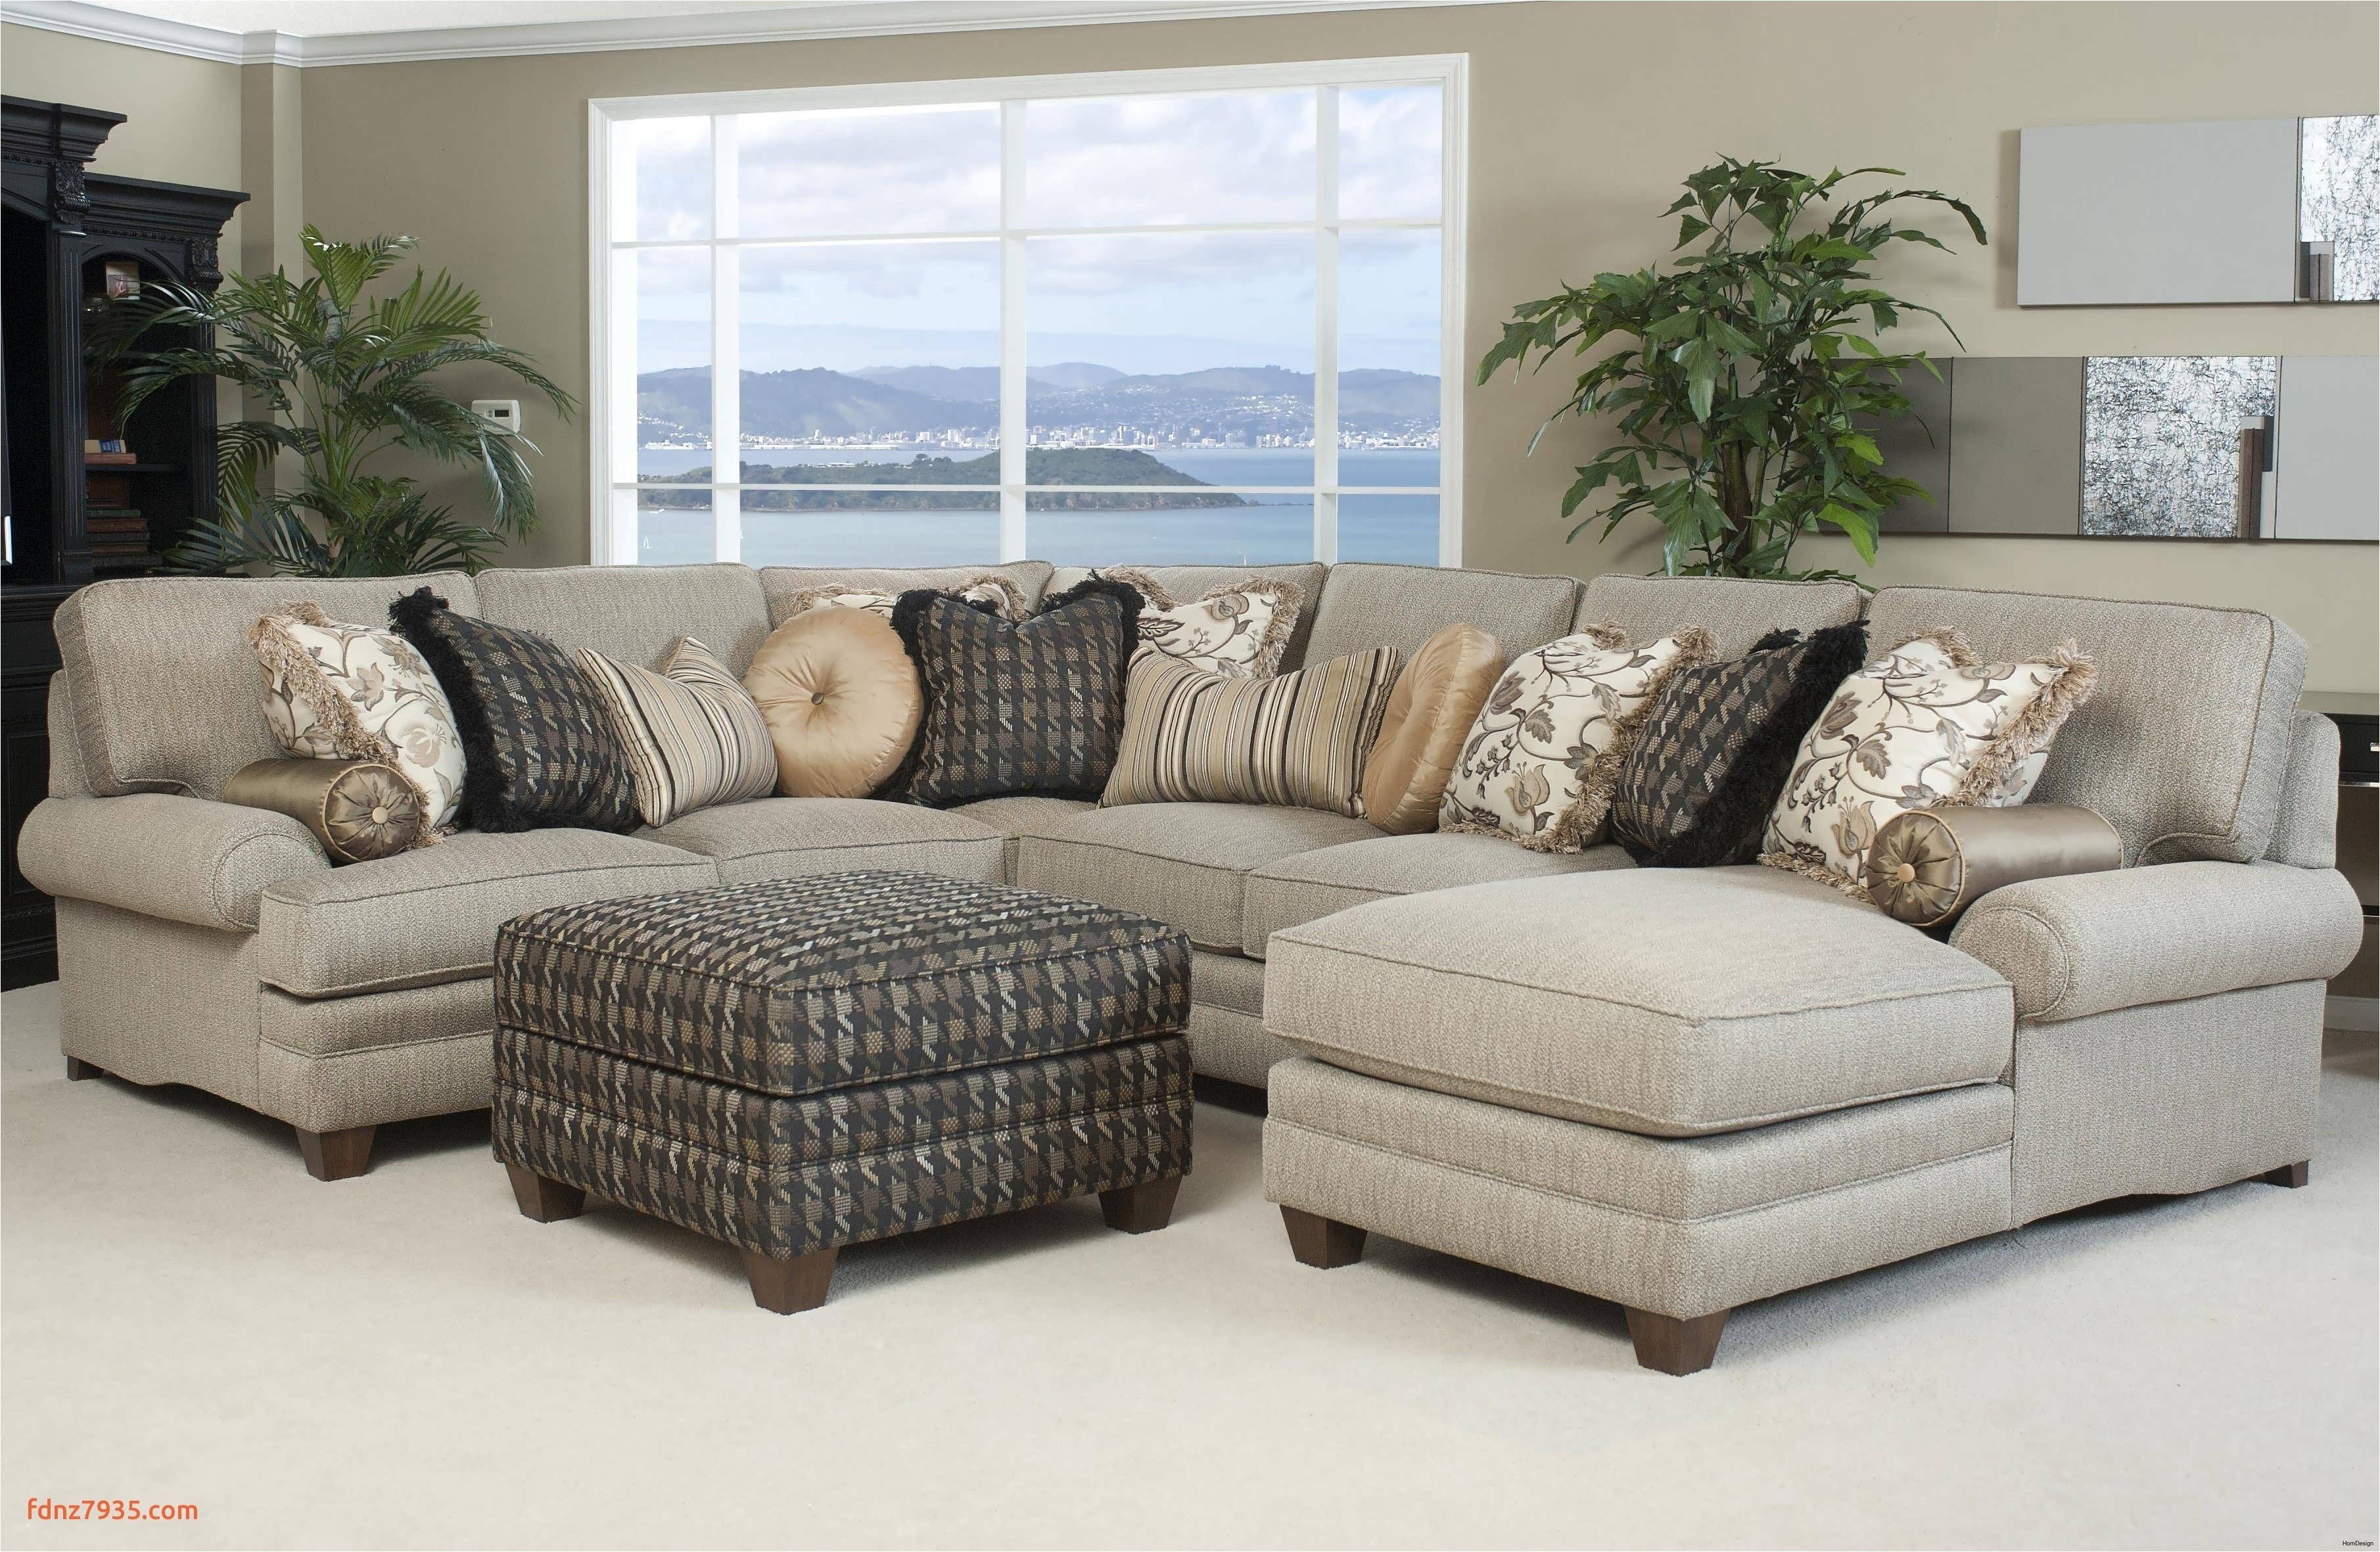 U Shaped Sectional Sofa With Chaise Bed Lazy Boy Reclining Living Sectional Sofa Comfy Comfortable Sectional Sofa Sectional Sofa With Chaise